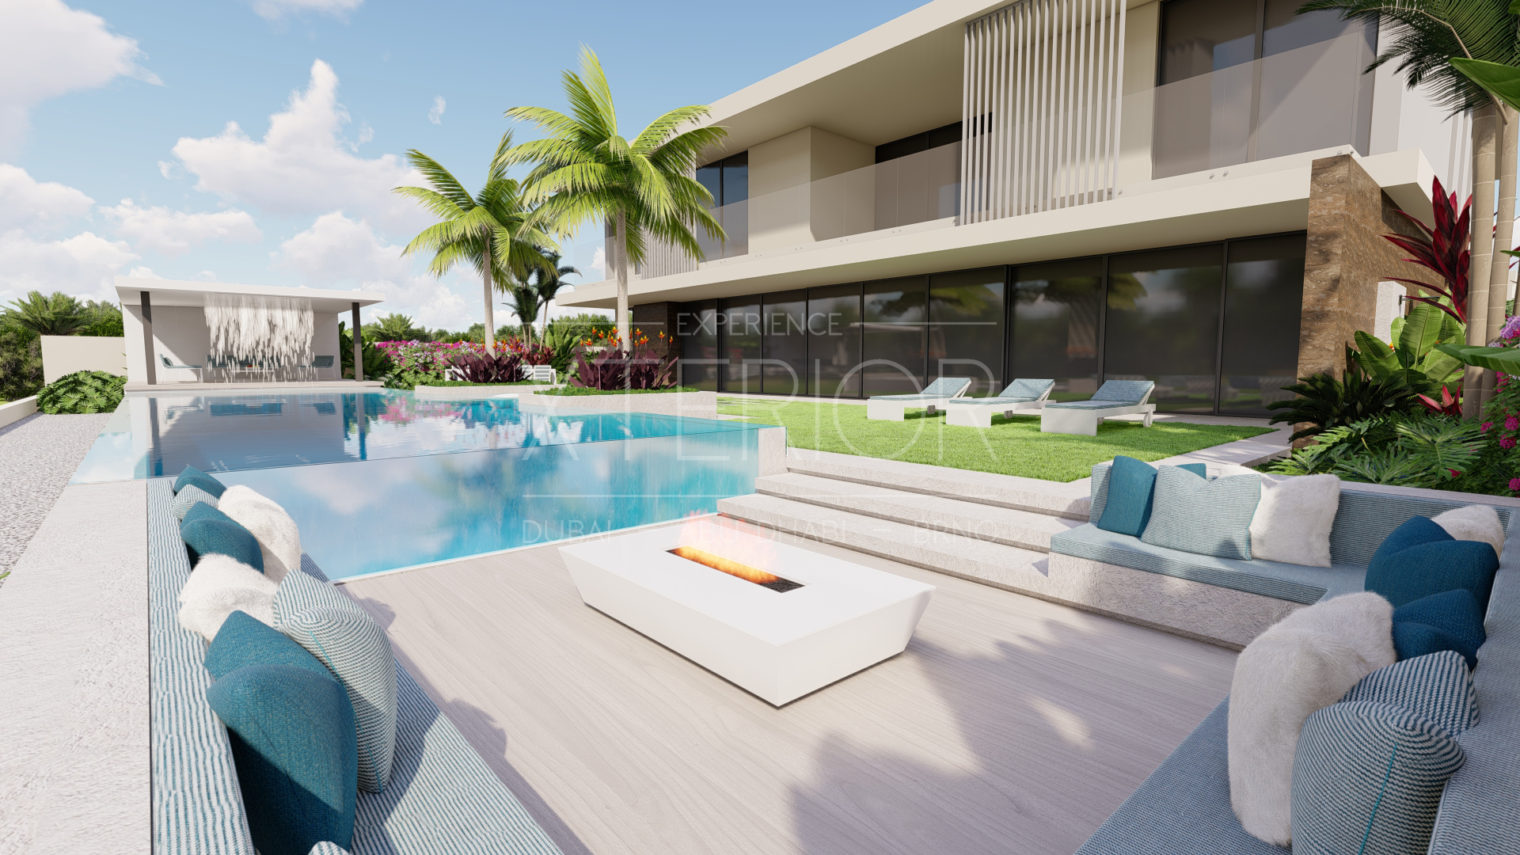 Shimmering wishes swimming pool and landscape company in dubai and abu dhabi project in under construction pergola modern swimming pool design build (1)